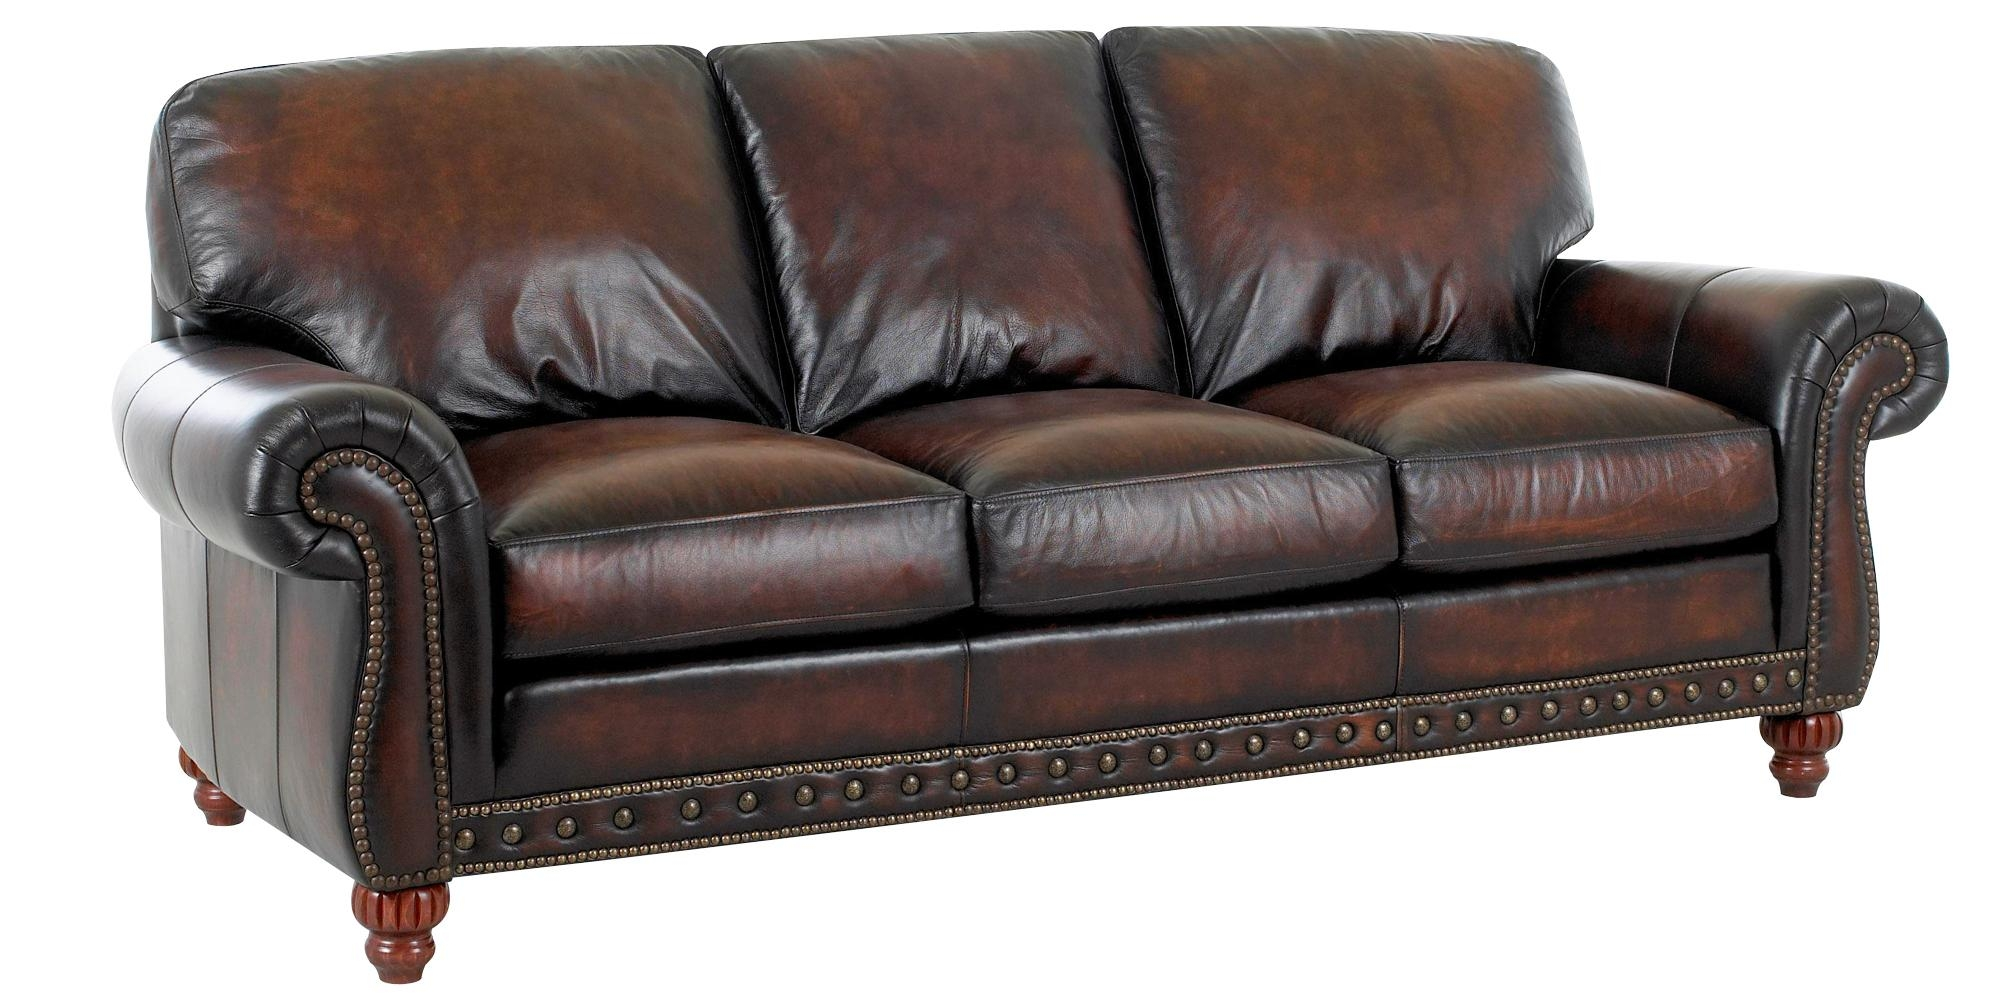 Traditional European Old World Leather Sofa Set | Club Furniture Throughout Old Fashioned Sofas (Image 20 of 20)